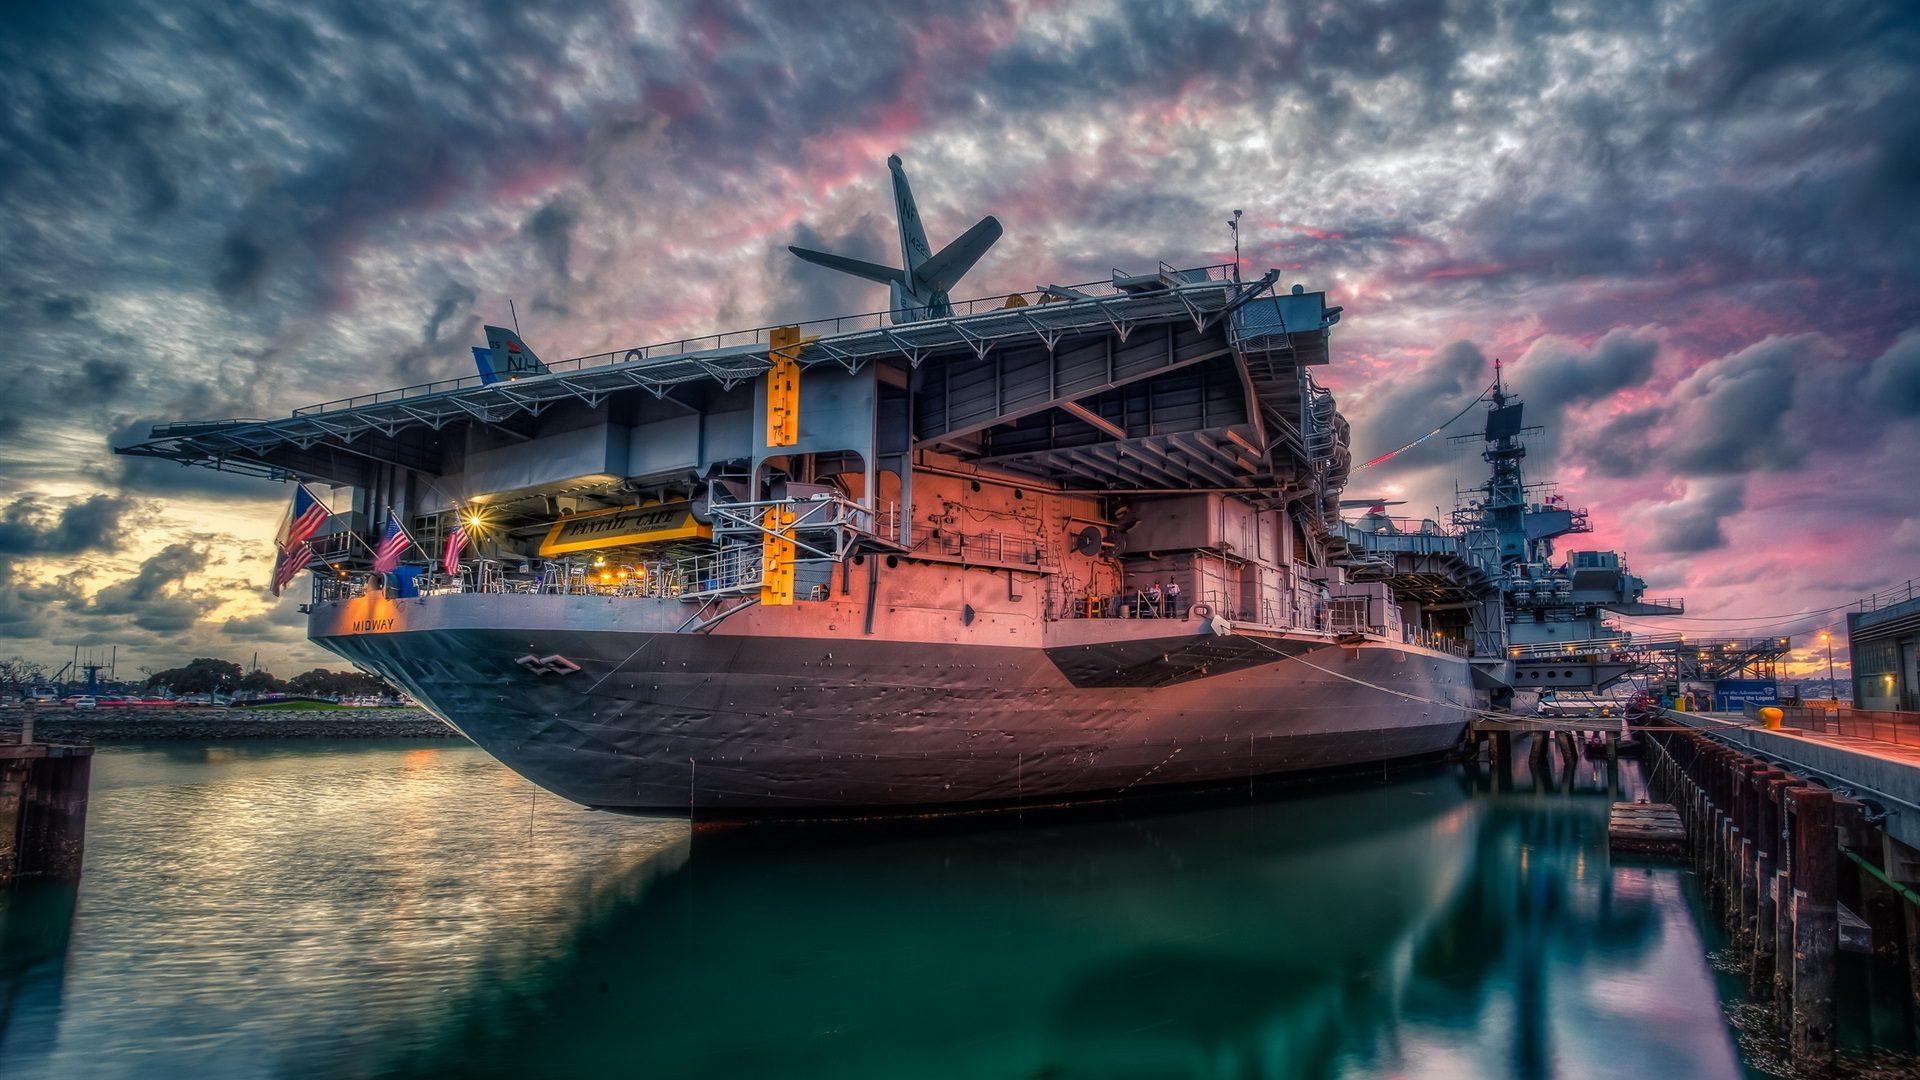 Wallpaper San Diego Uss Midway Sunset 2560x1600 Hd Picture Image